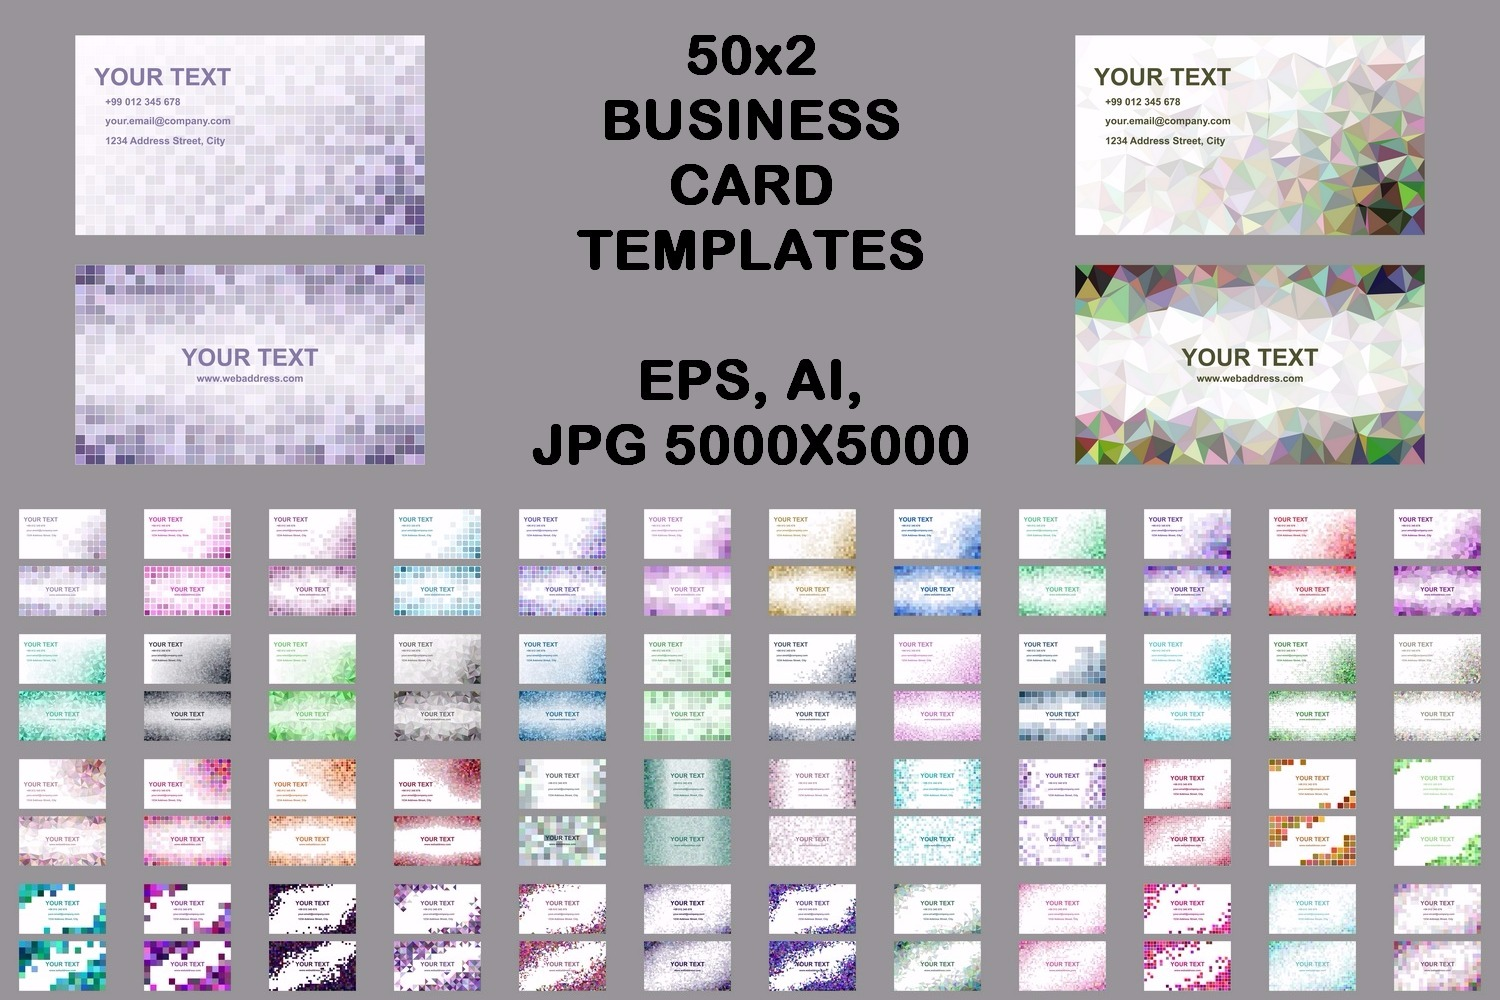 50x2 mosaic design business card templates (EPS, AI, JPG 5000x5000) example image 1